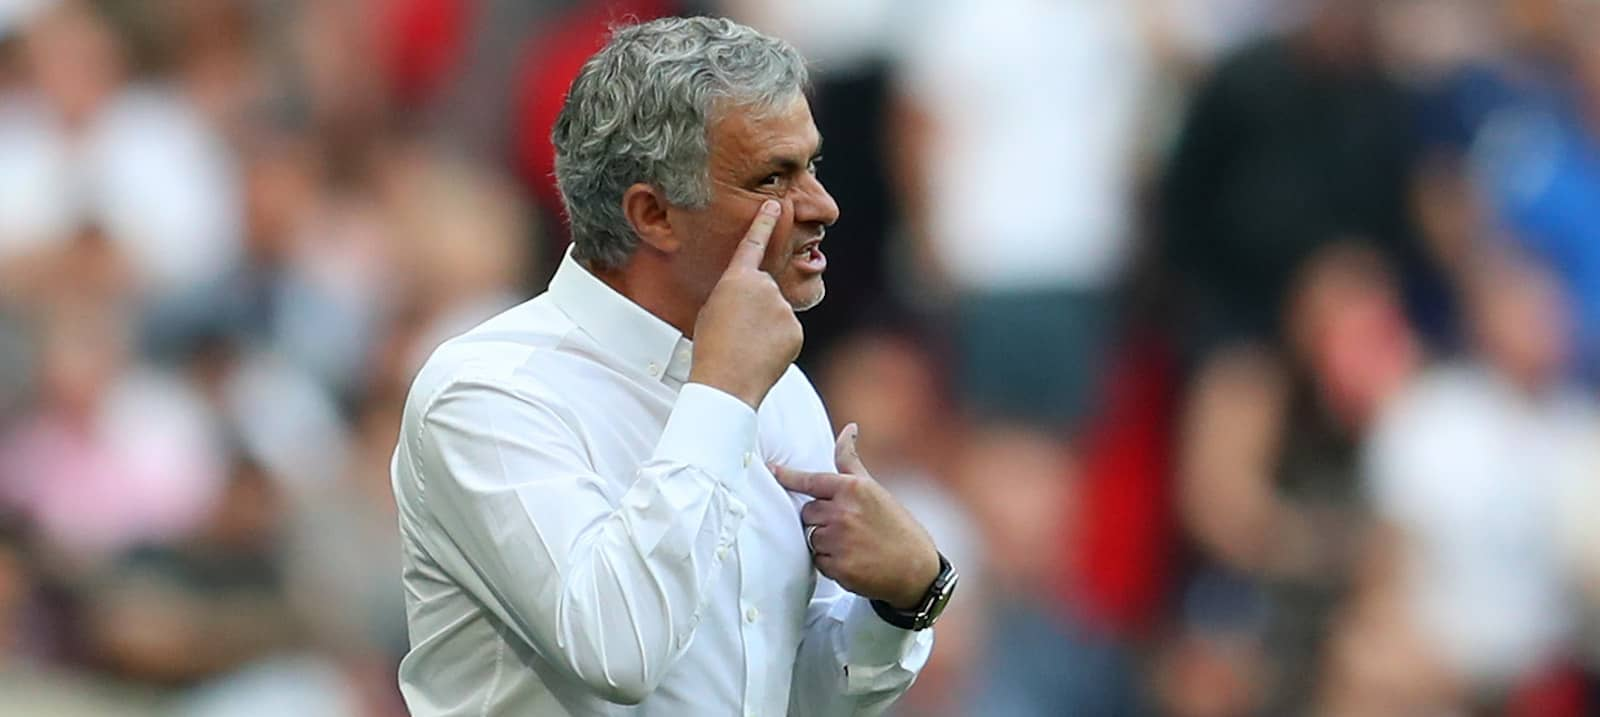 Jose Mourinho targeting second box-to-box midfield signing this summer – report